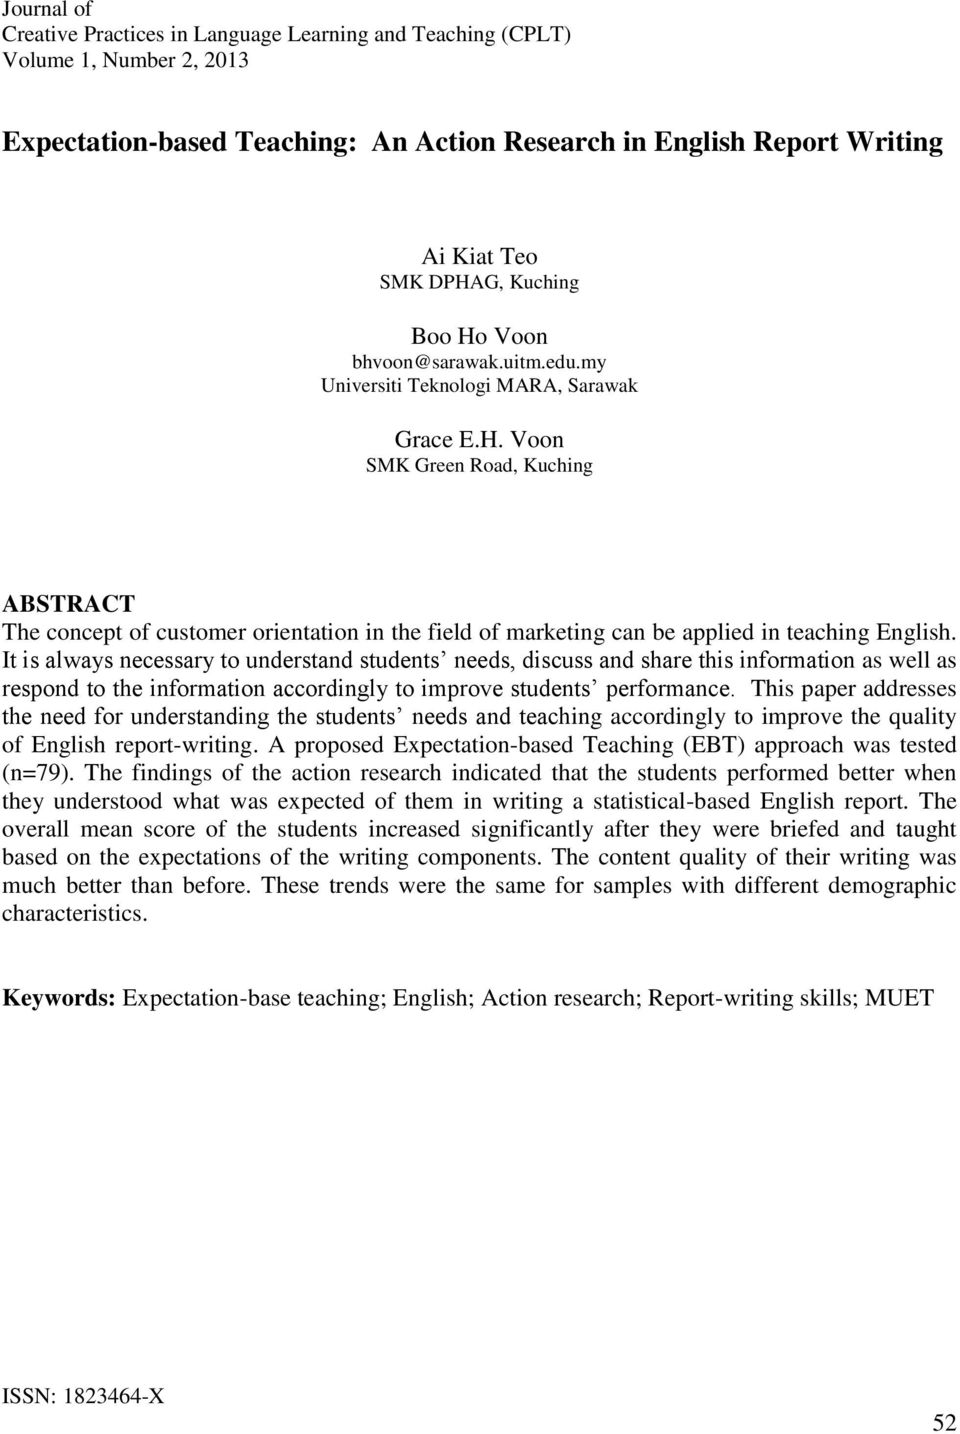 Proofreading and editing thesis